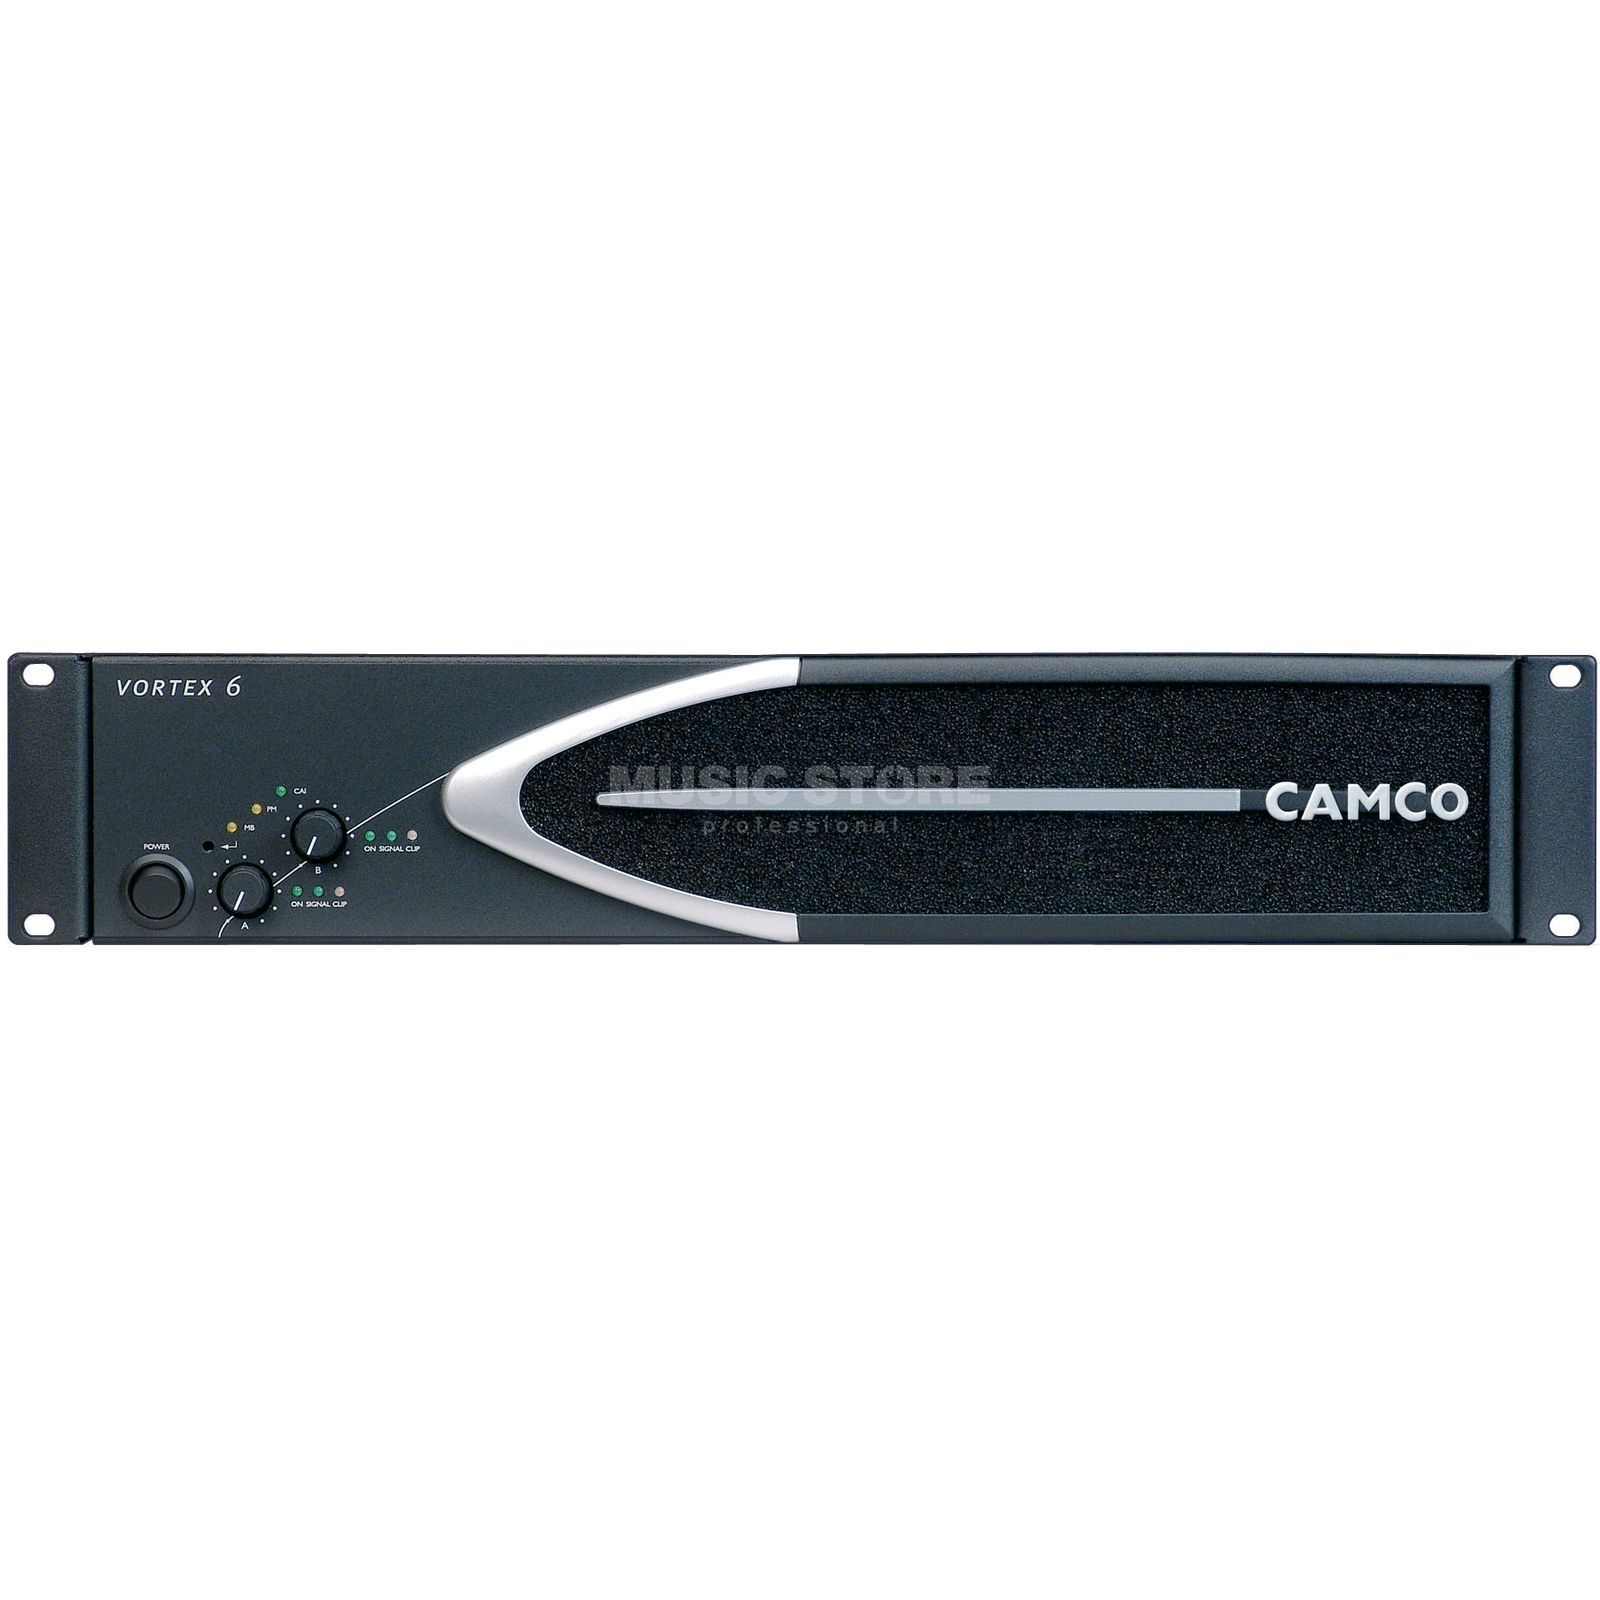 Camco Vortex 6, Power Amplifier 2 x 2300 Watt / 4 Ohm Produktbillede